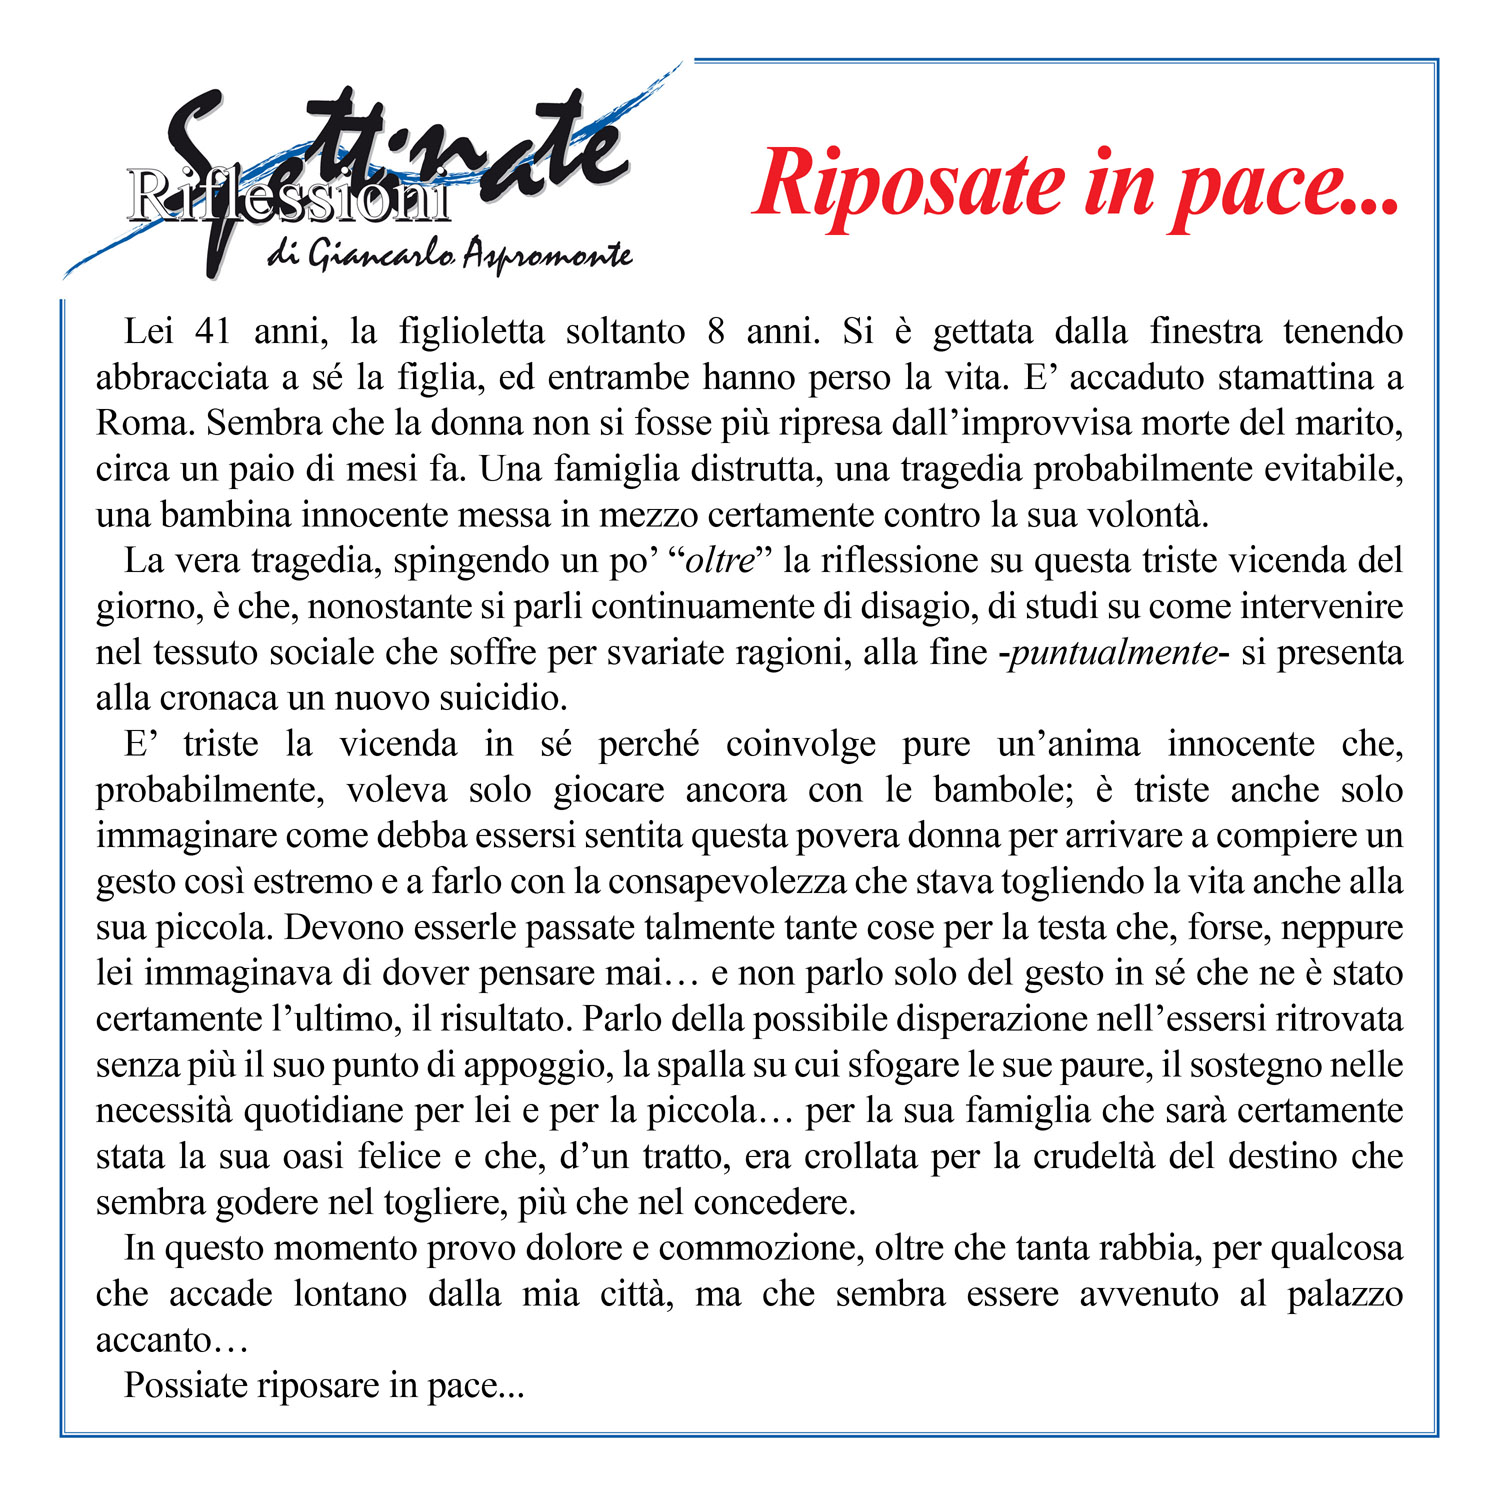 Riposate in pace...